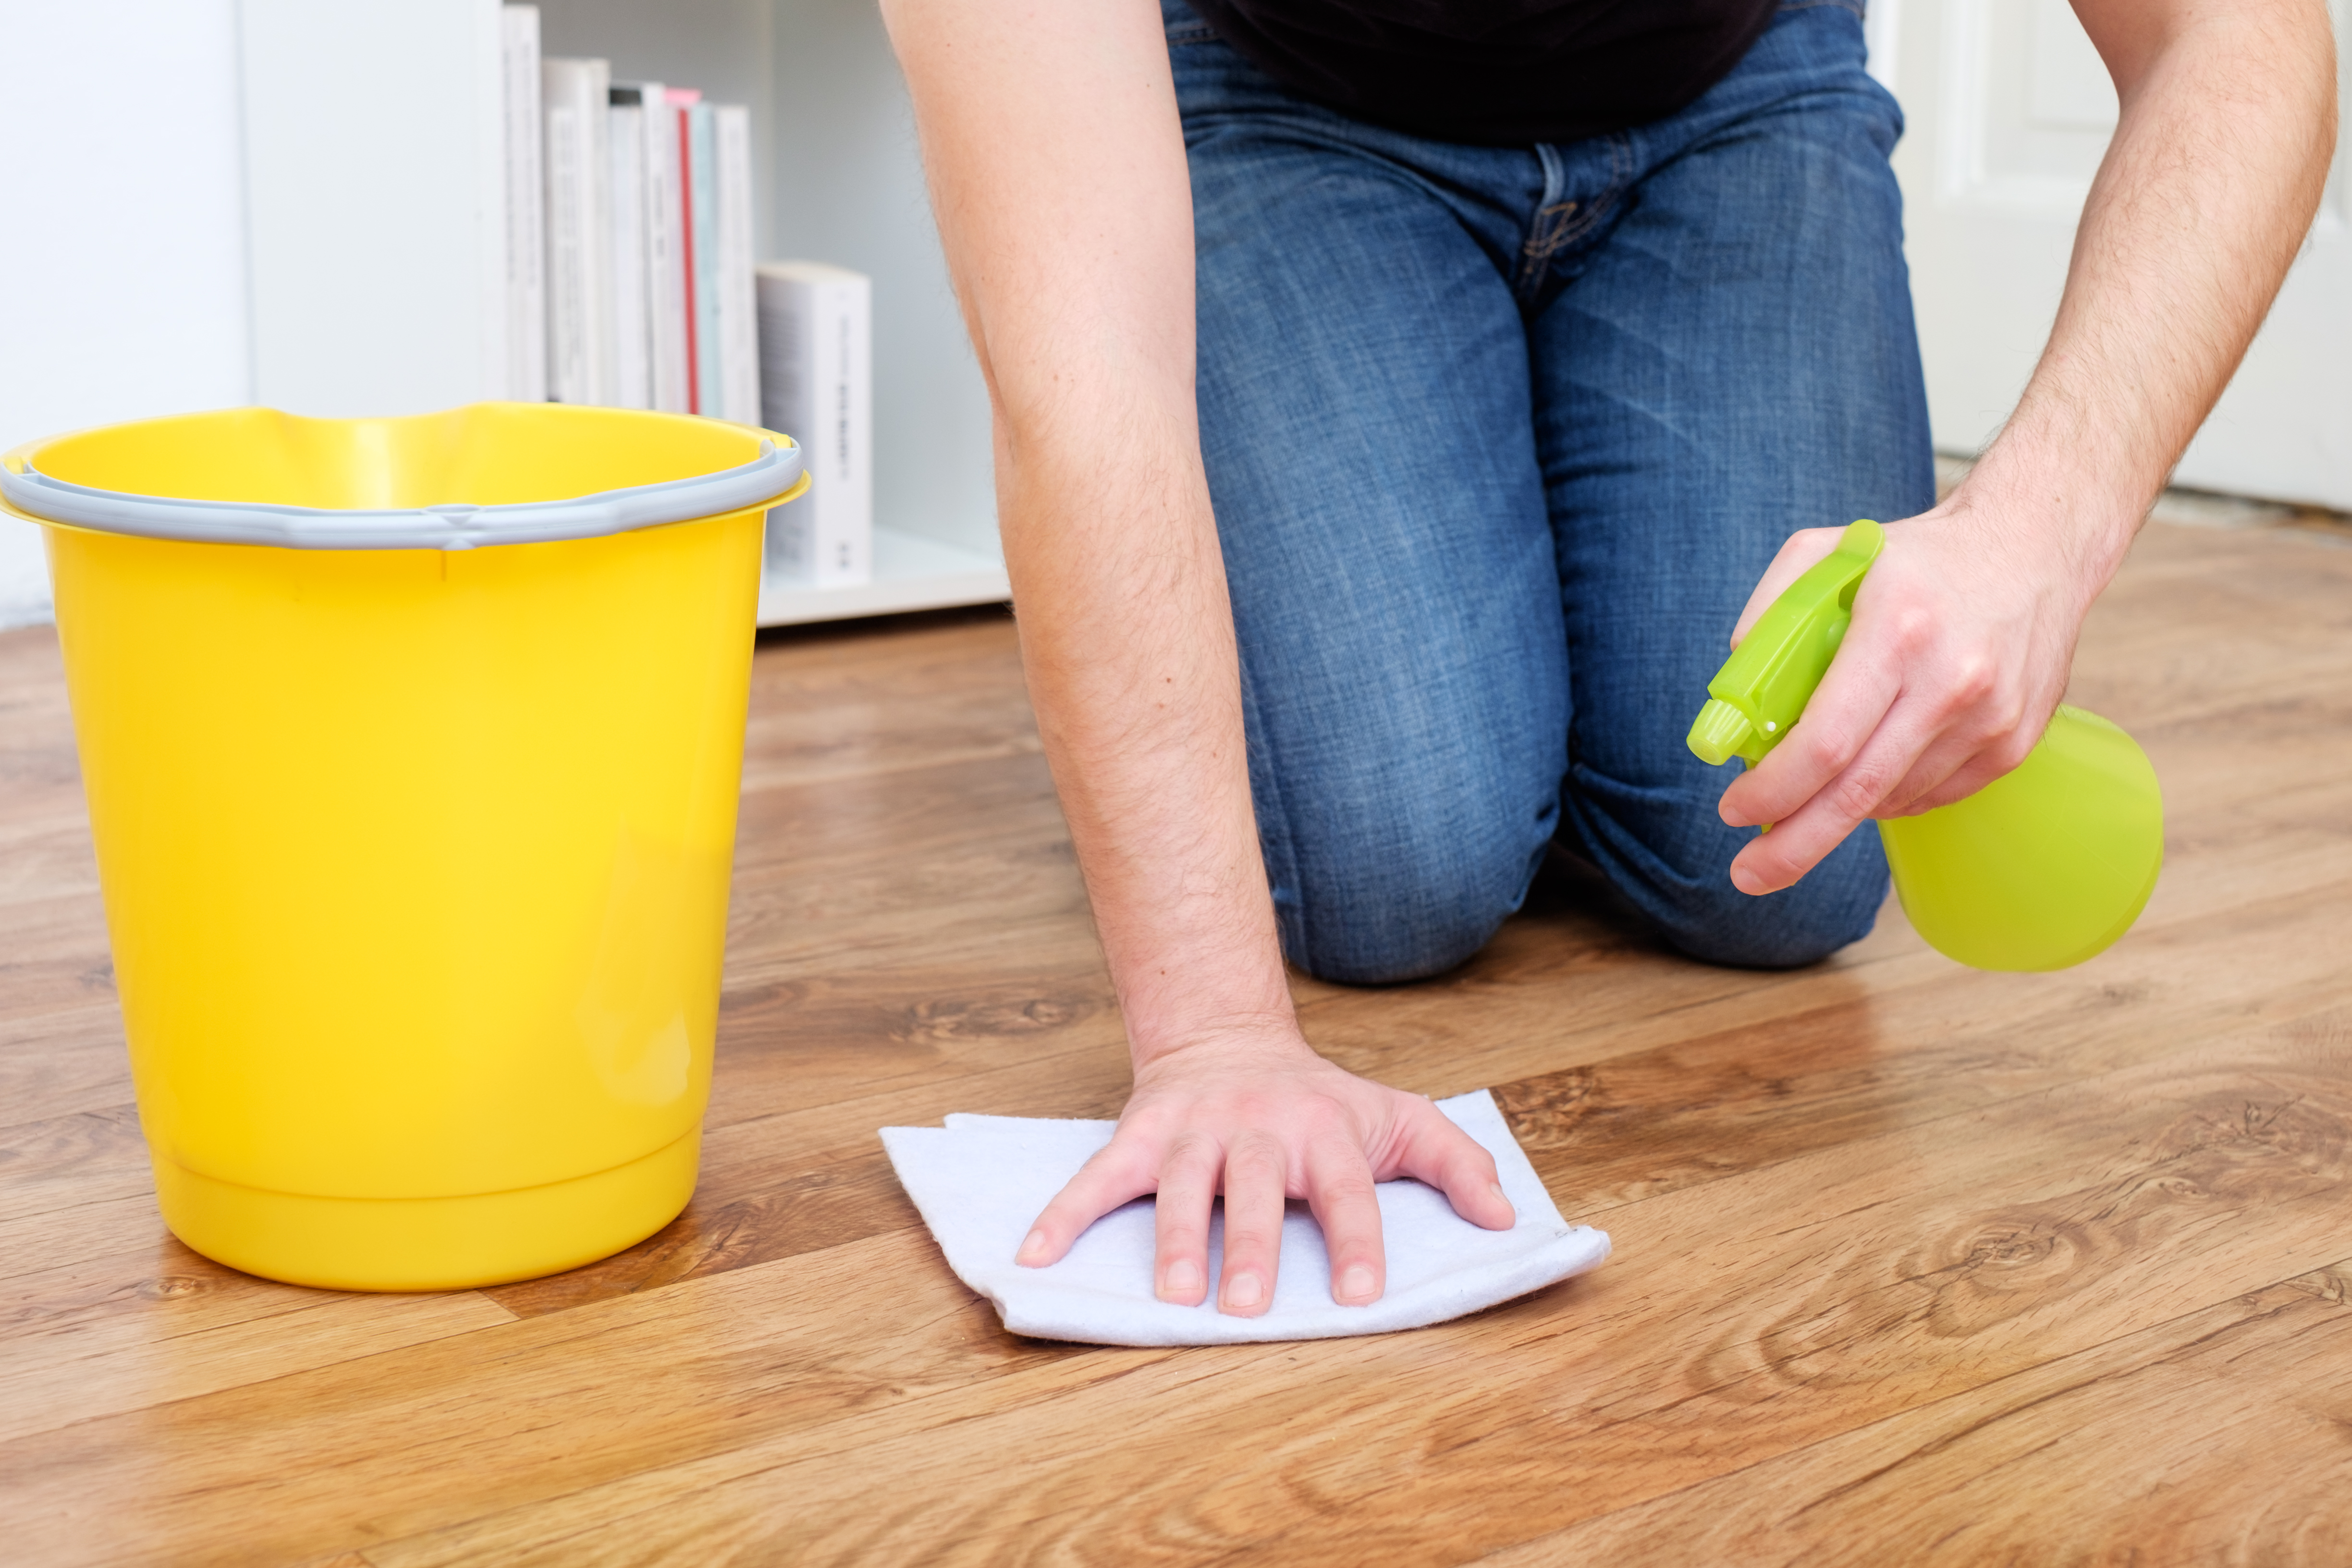 How to Disinfect a Wooden Floor | Home Guides | SF Gate